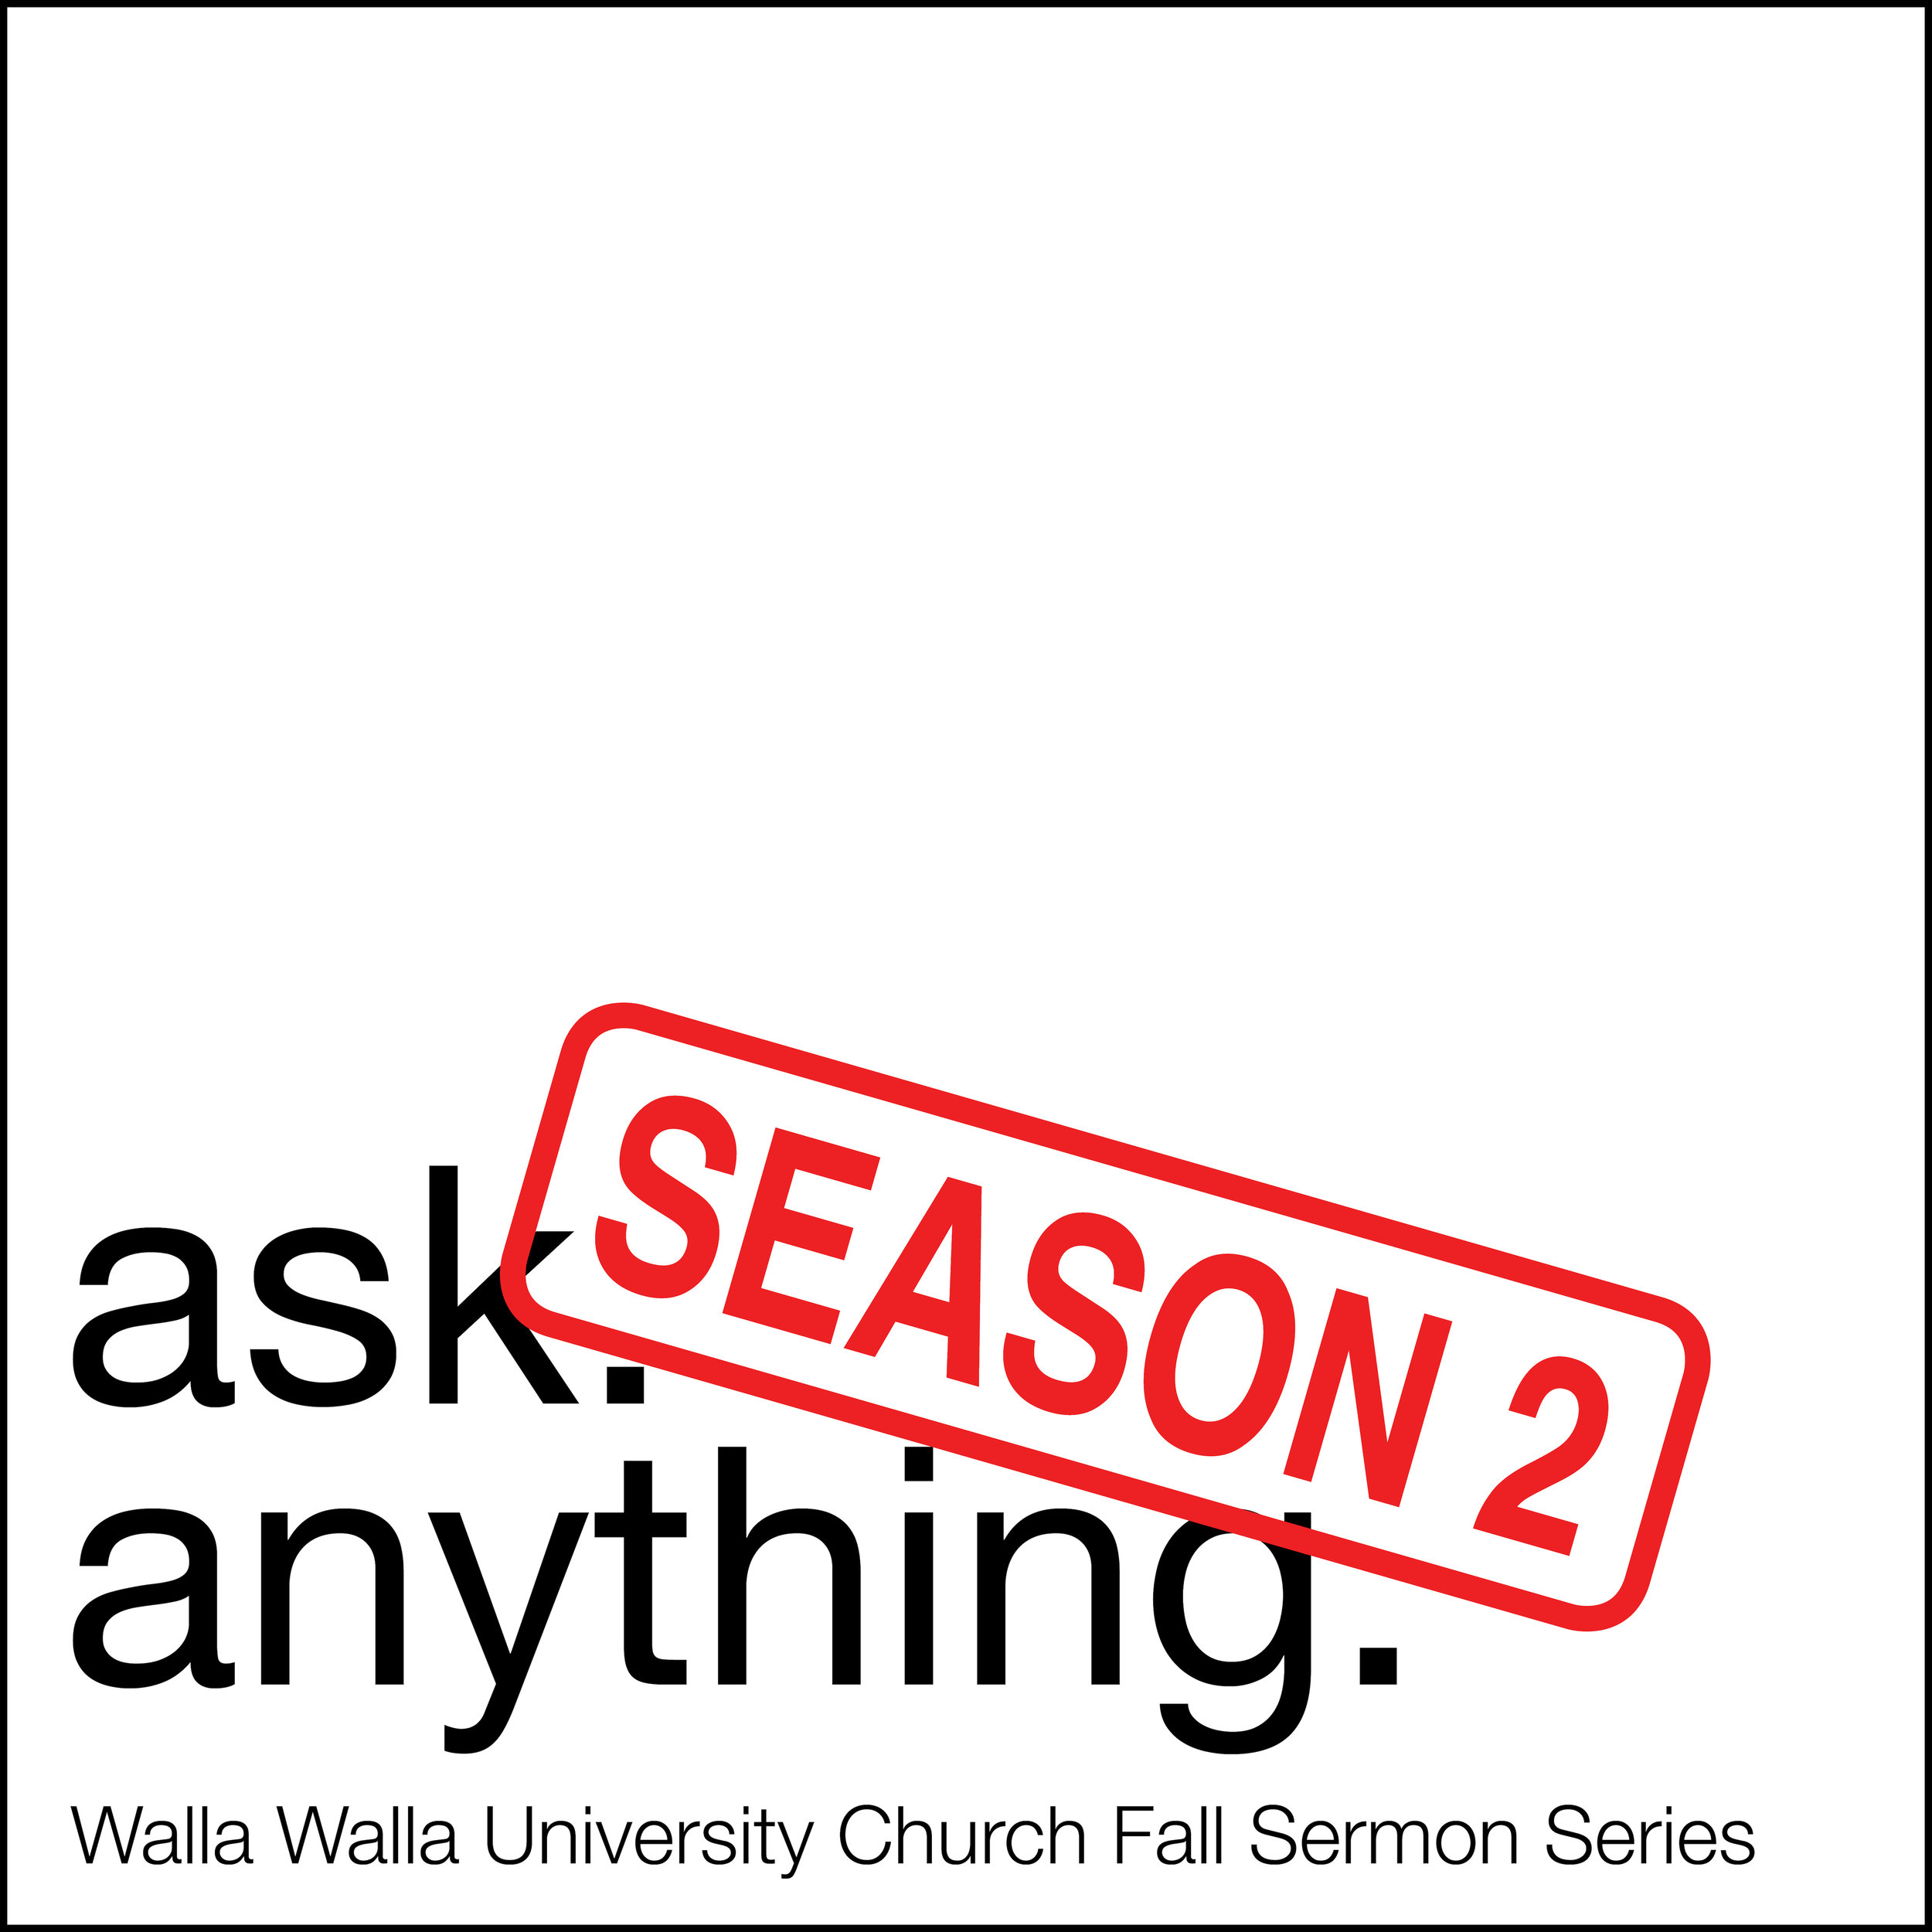 Ask, season 2, Square Social (with border).jpg